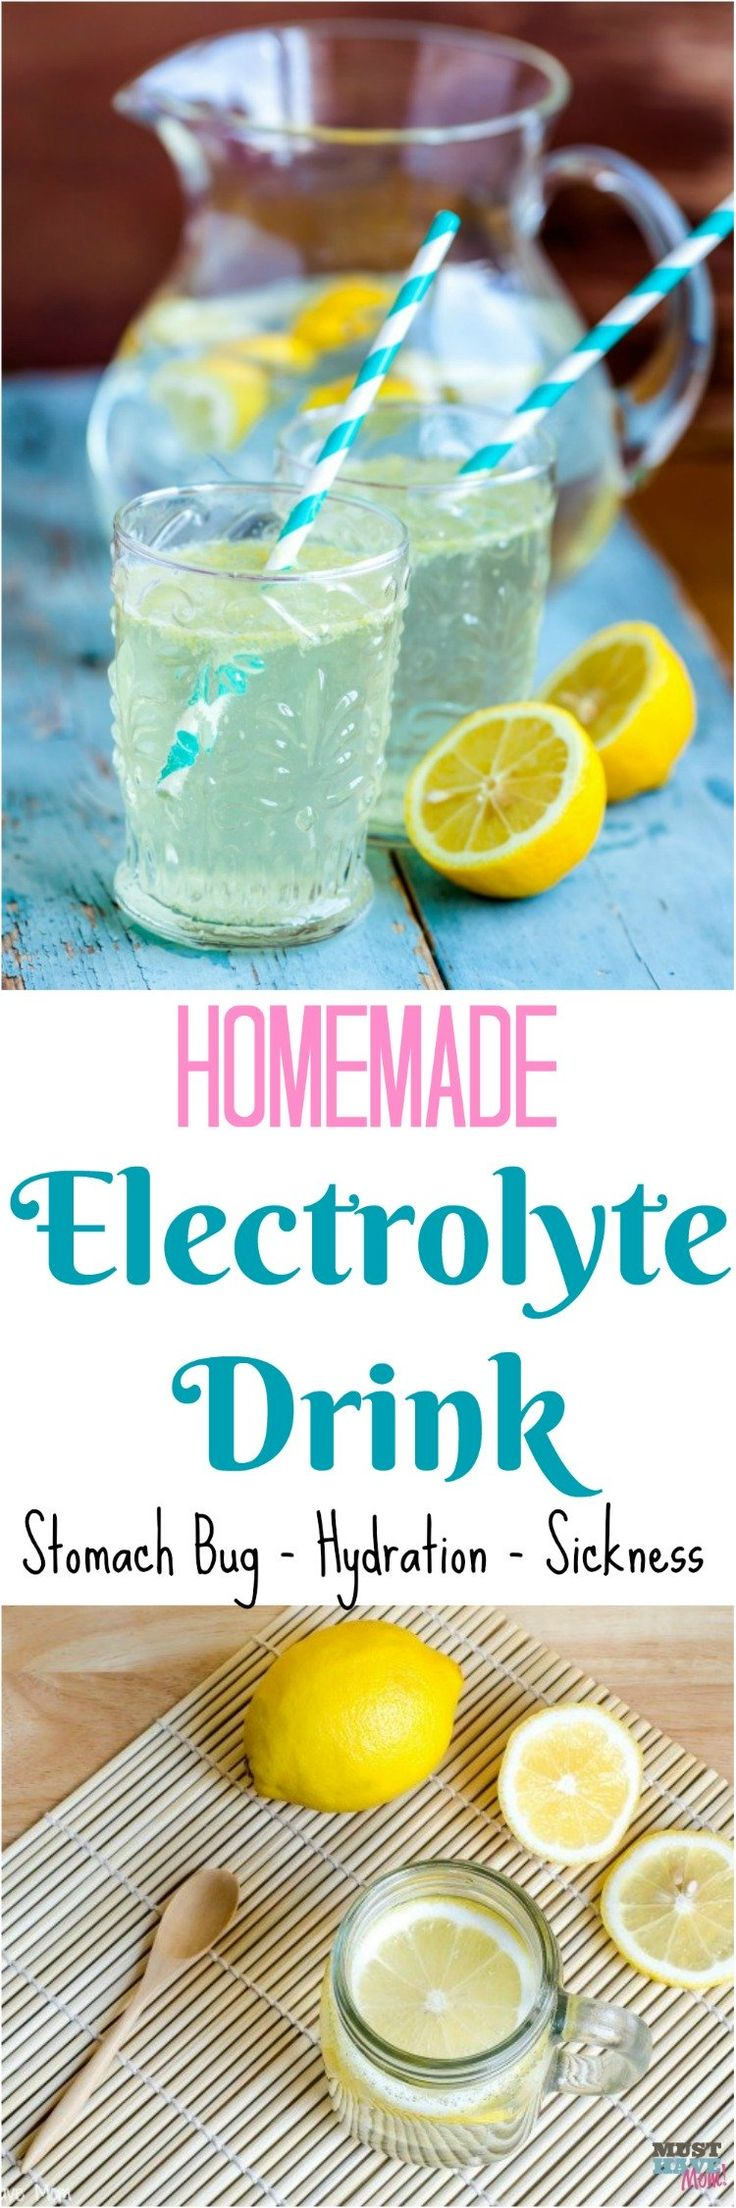 Homemade Electrolyte Drink recipe for sickness, hydration, stomach bug, food poisoning. This natural remedy works and is So easy to make.